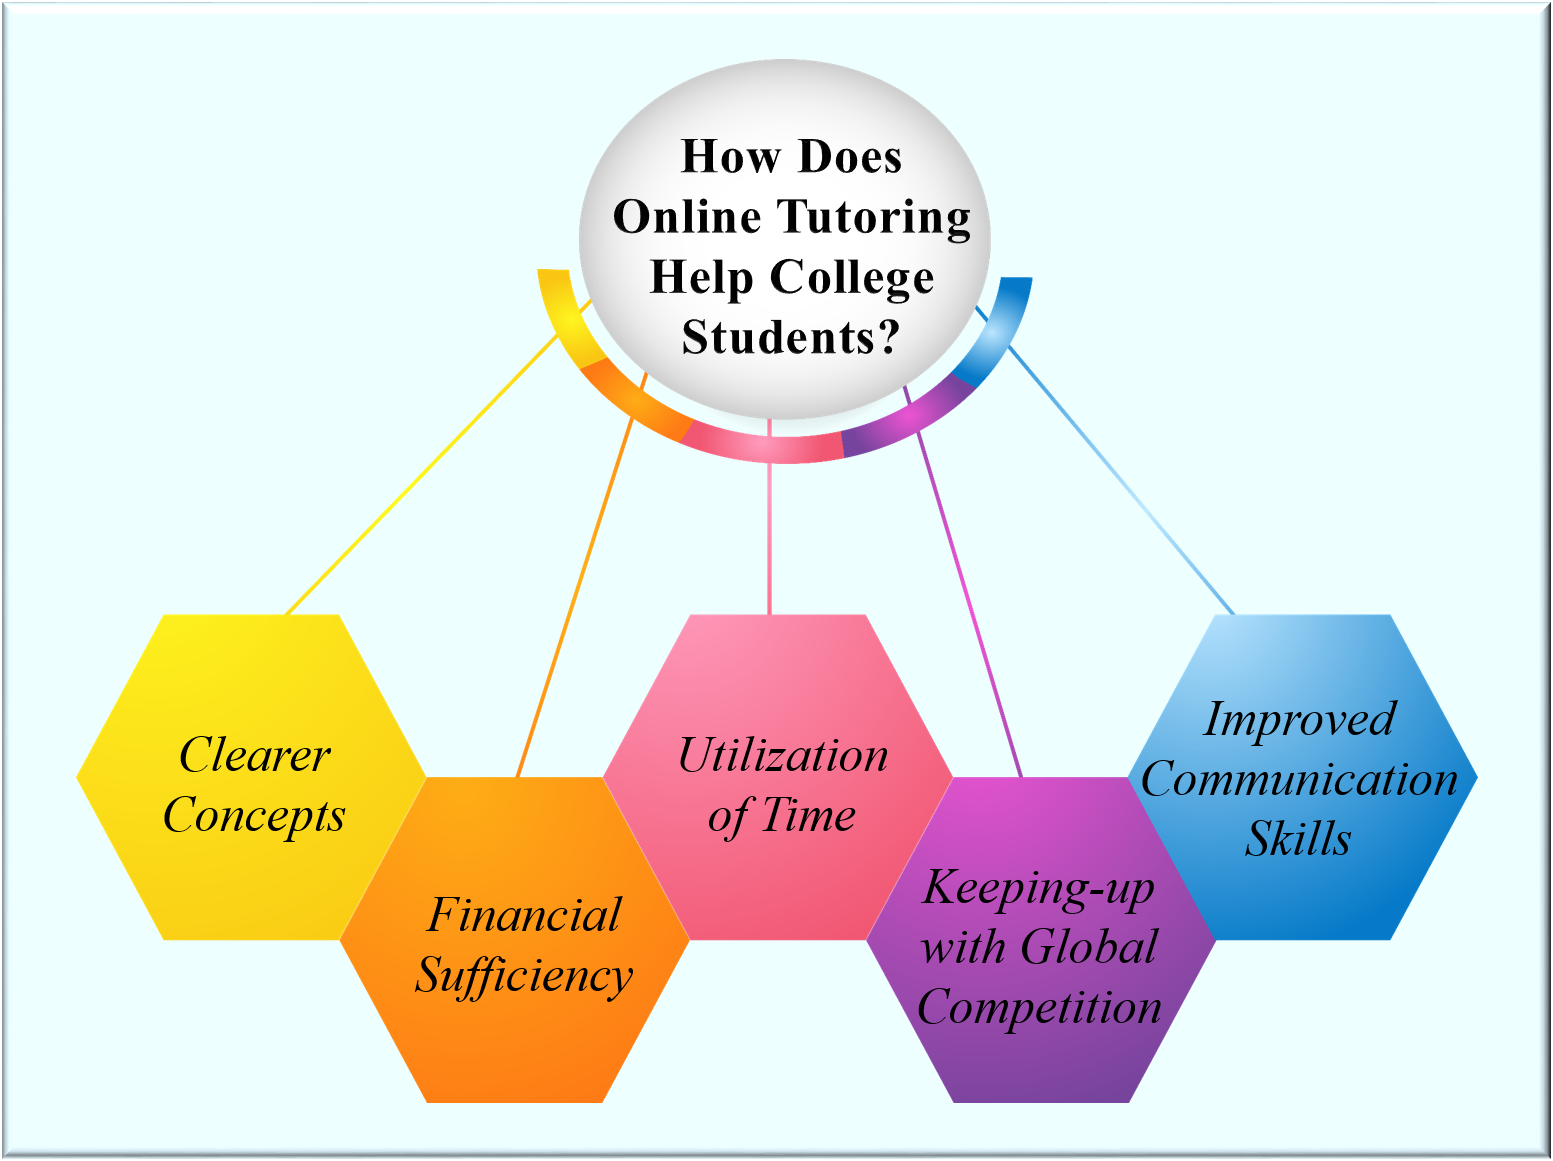 How Does Online Tutoring Help College Students?